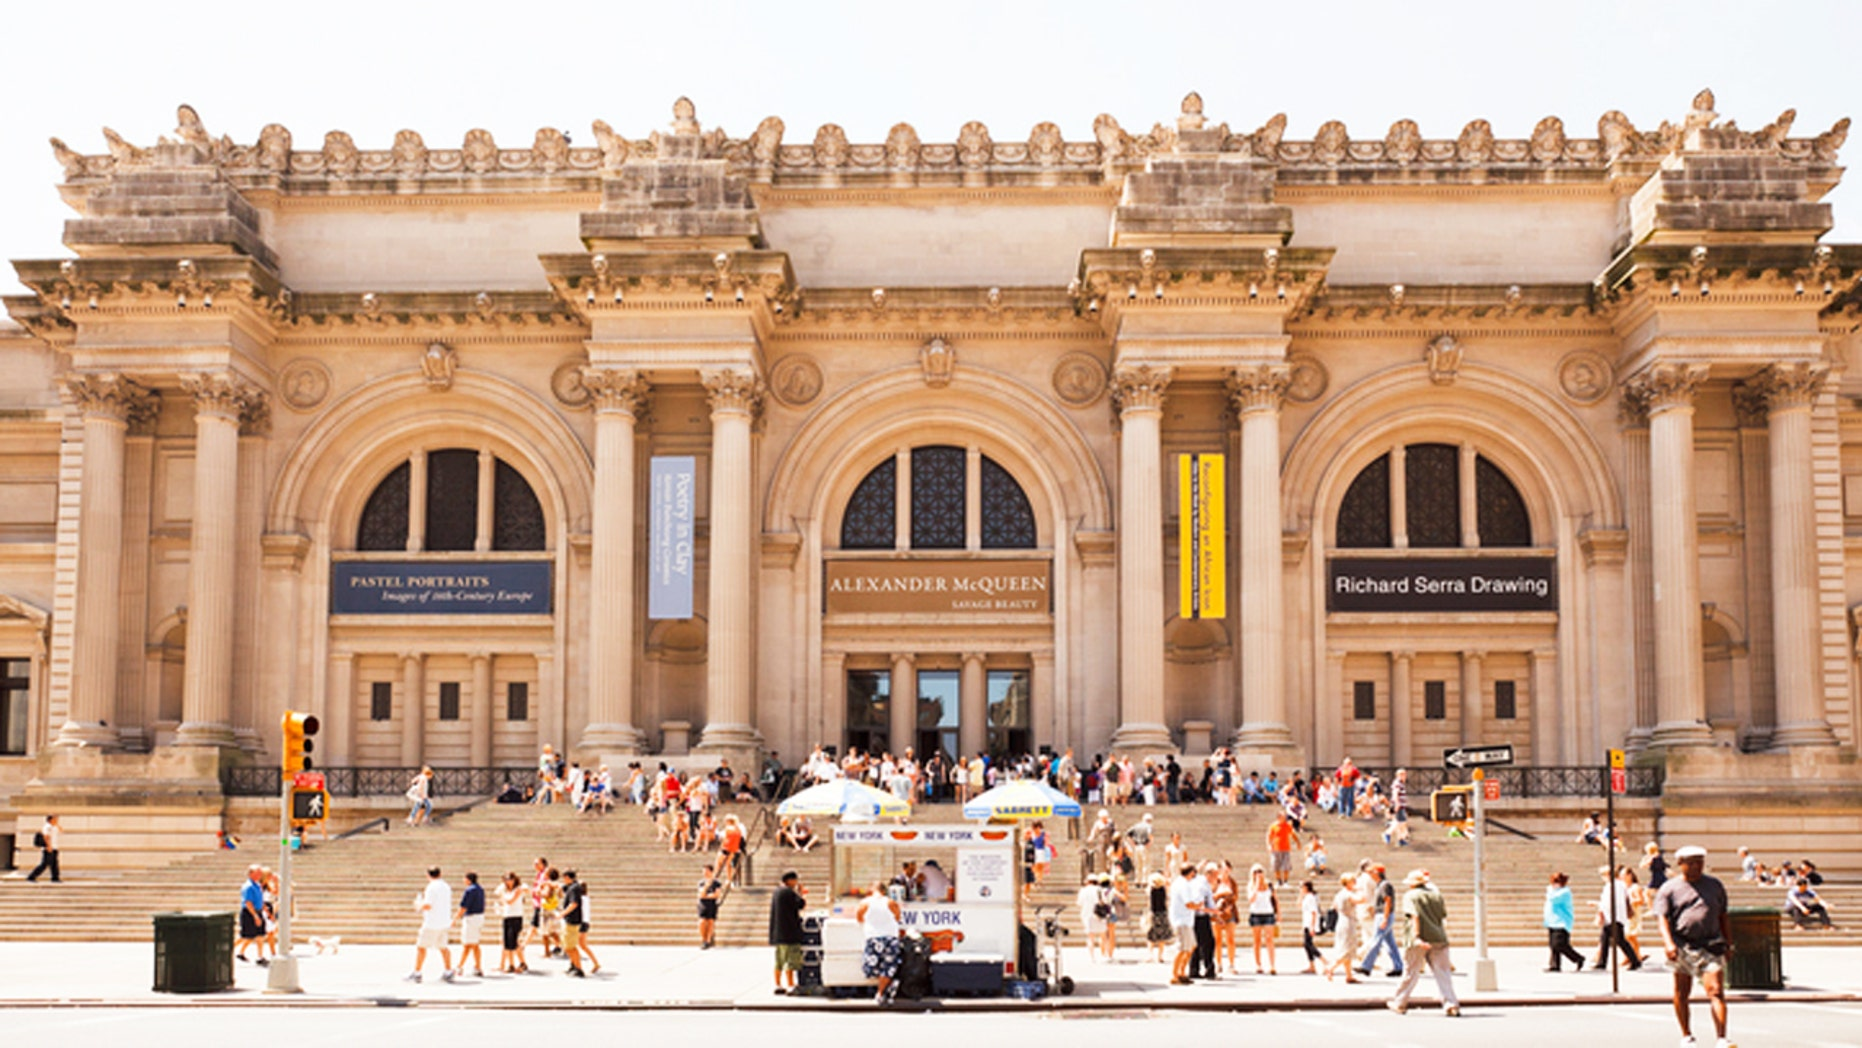 """""""New York, New York, USA - July 10, 2011: The recently renovated exterior of the Metropolitan Museum of Art in New York City. Visited by millions of people each year, this world renowned museum is located on 5th avenue between 80th and 84th streets. People can be seen entering and exiting through the main entrance as well as relaxing on the large staircase. A food cart provides refreshments for pedestrians."""""""